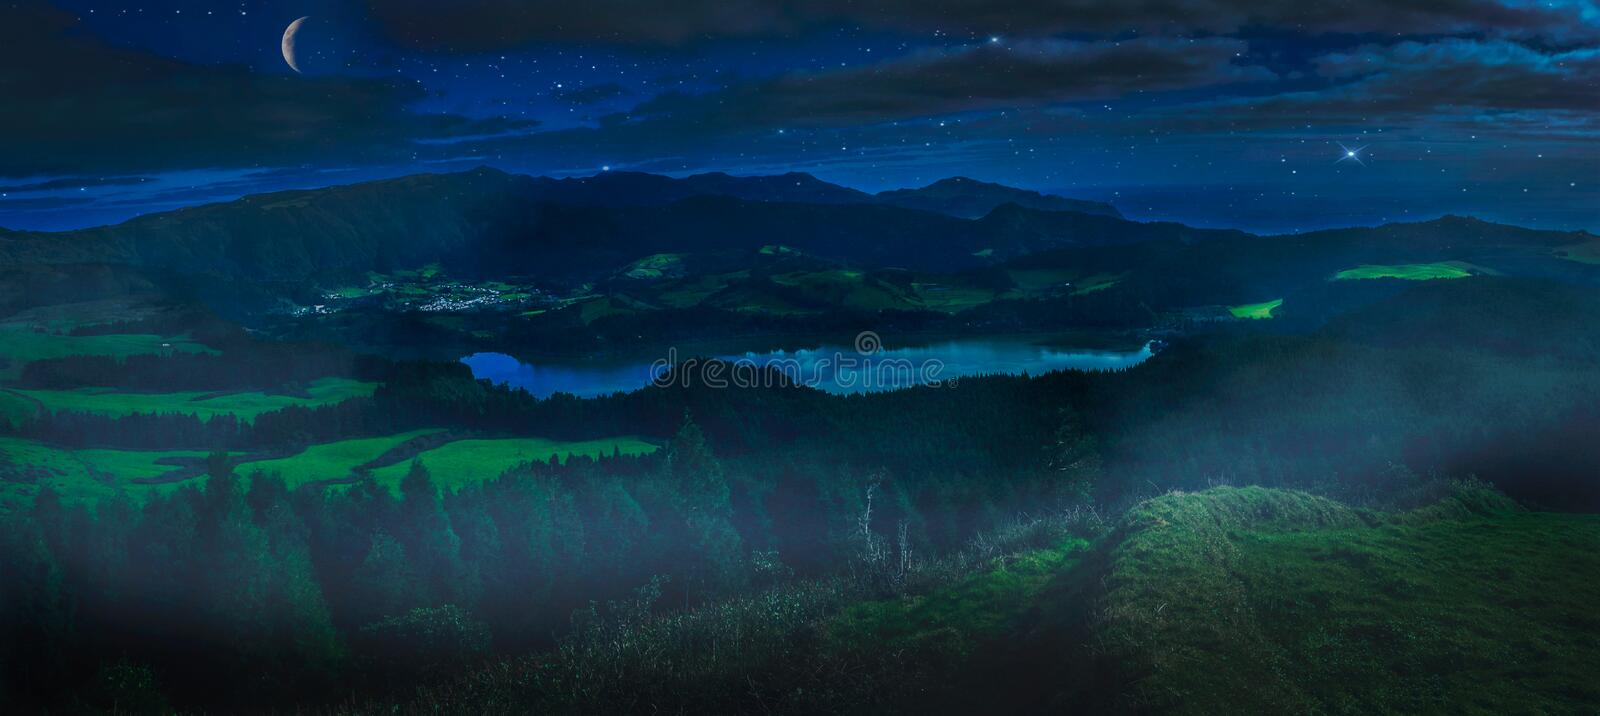 Furnas Lake at night. Nighttime picture of the stunningly beautiful volcanic crater Furnas Lake, Sao Miguel, Azores, Portugal royalty free stock photos